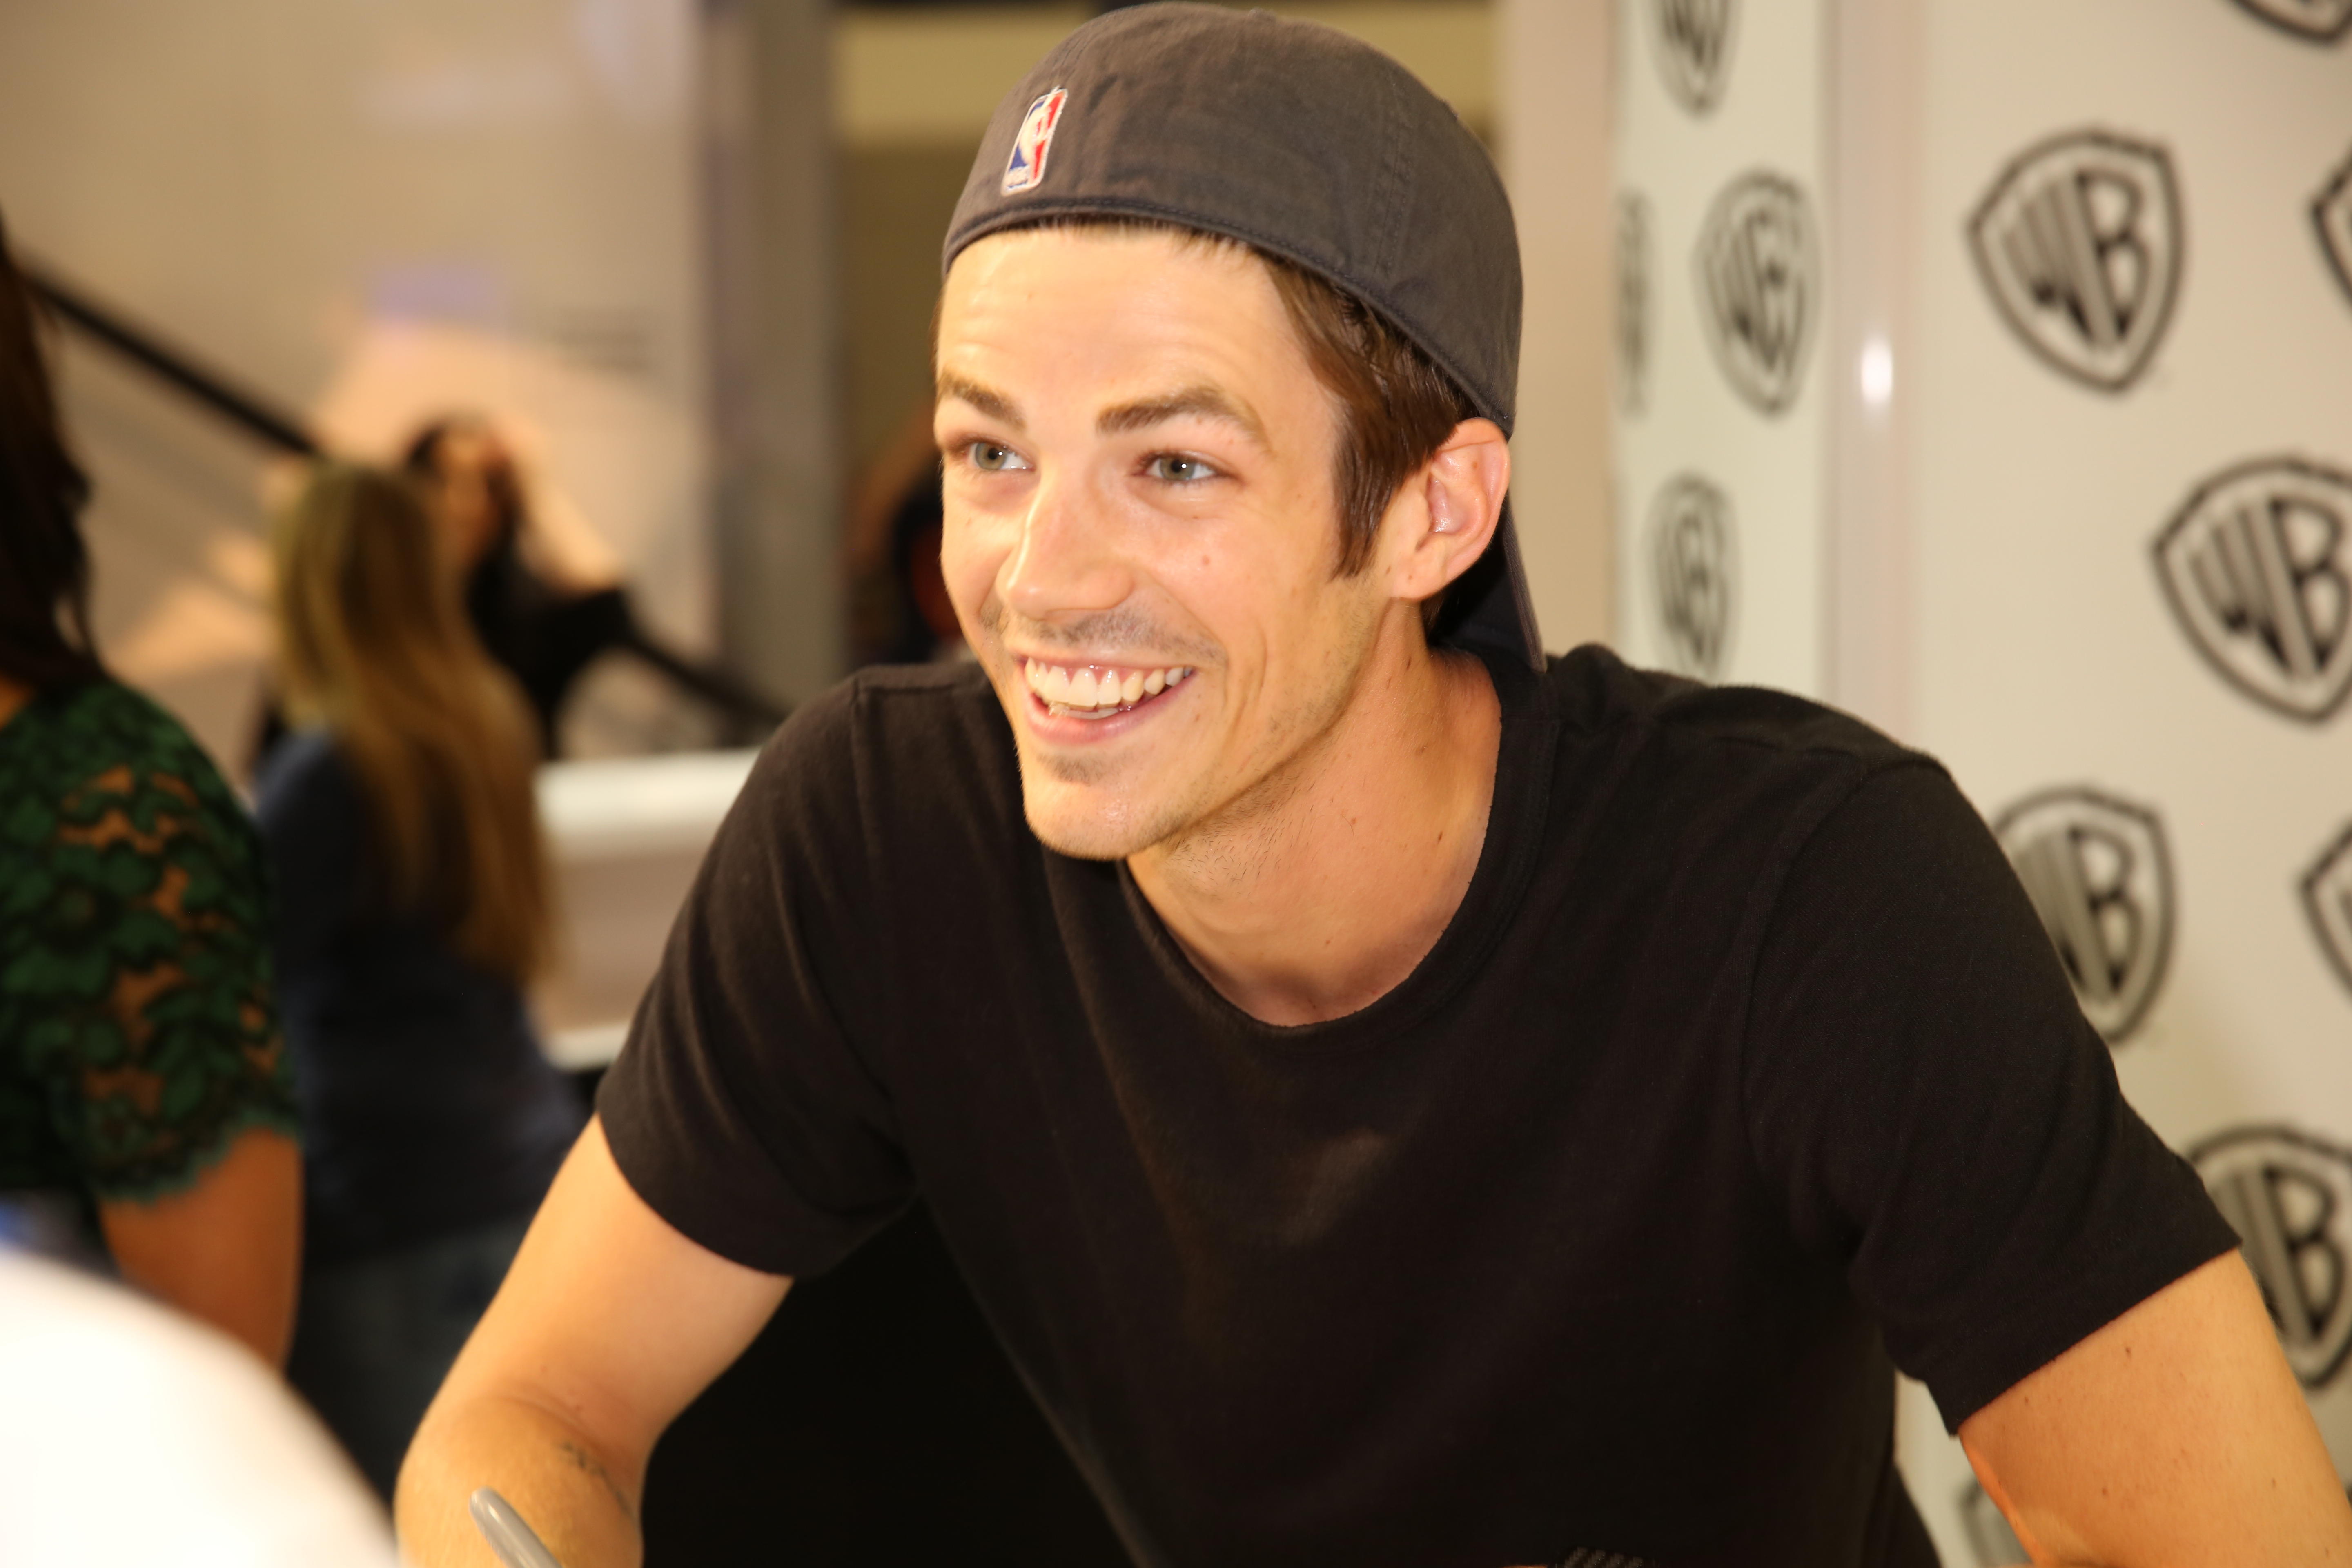 The flash signing grant gustin barry allenthe flash chats with a fan during the flash signing in the warner bros booth during comic con 2015 wbsdcc 2015 wbei m4hsunfo Image collections